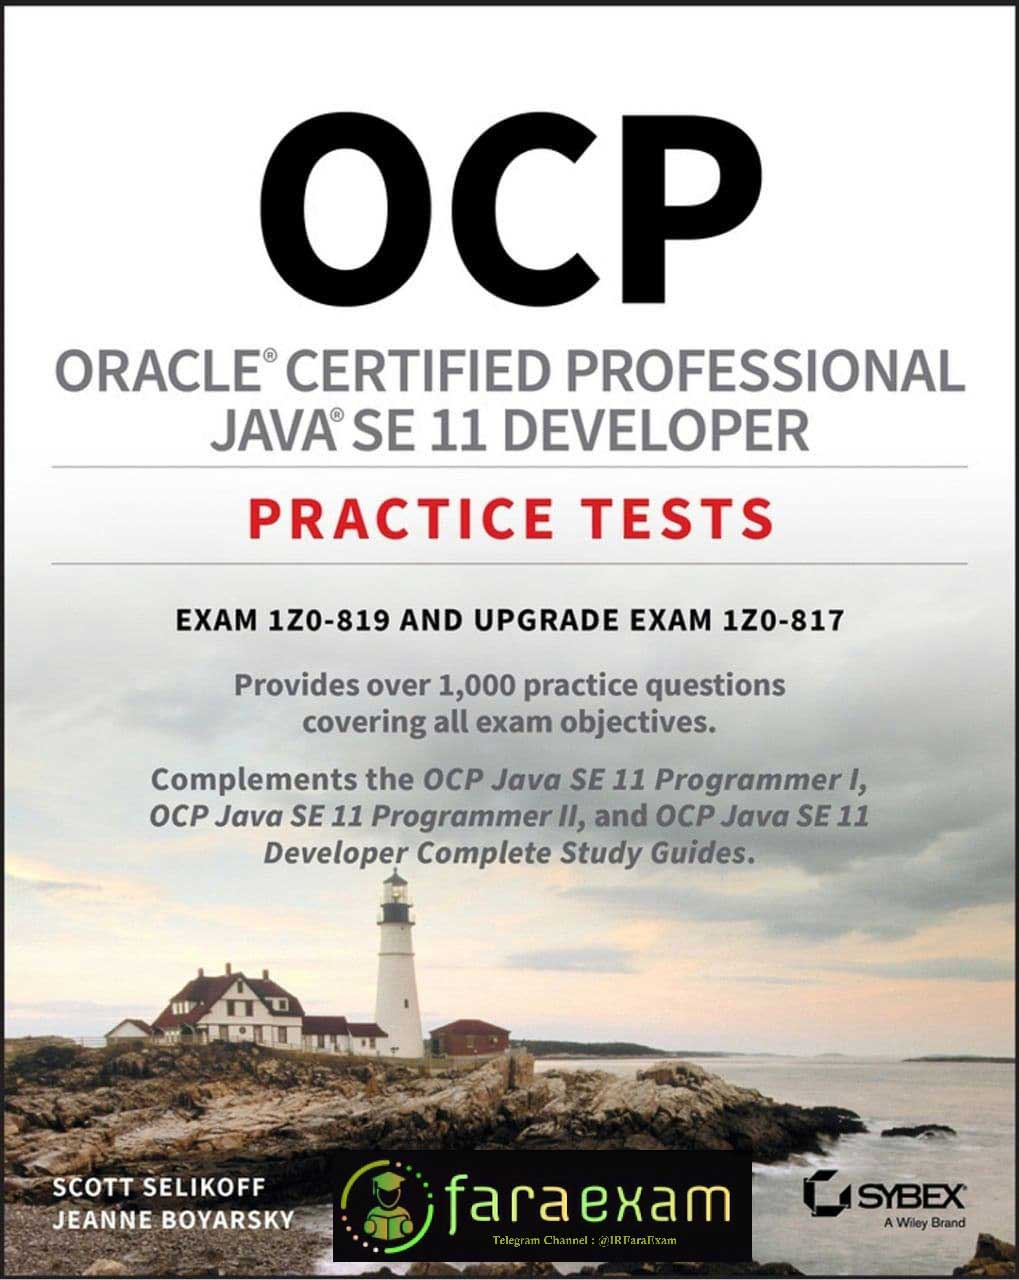 oracle certified proffessional